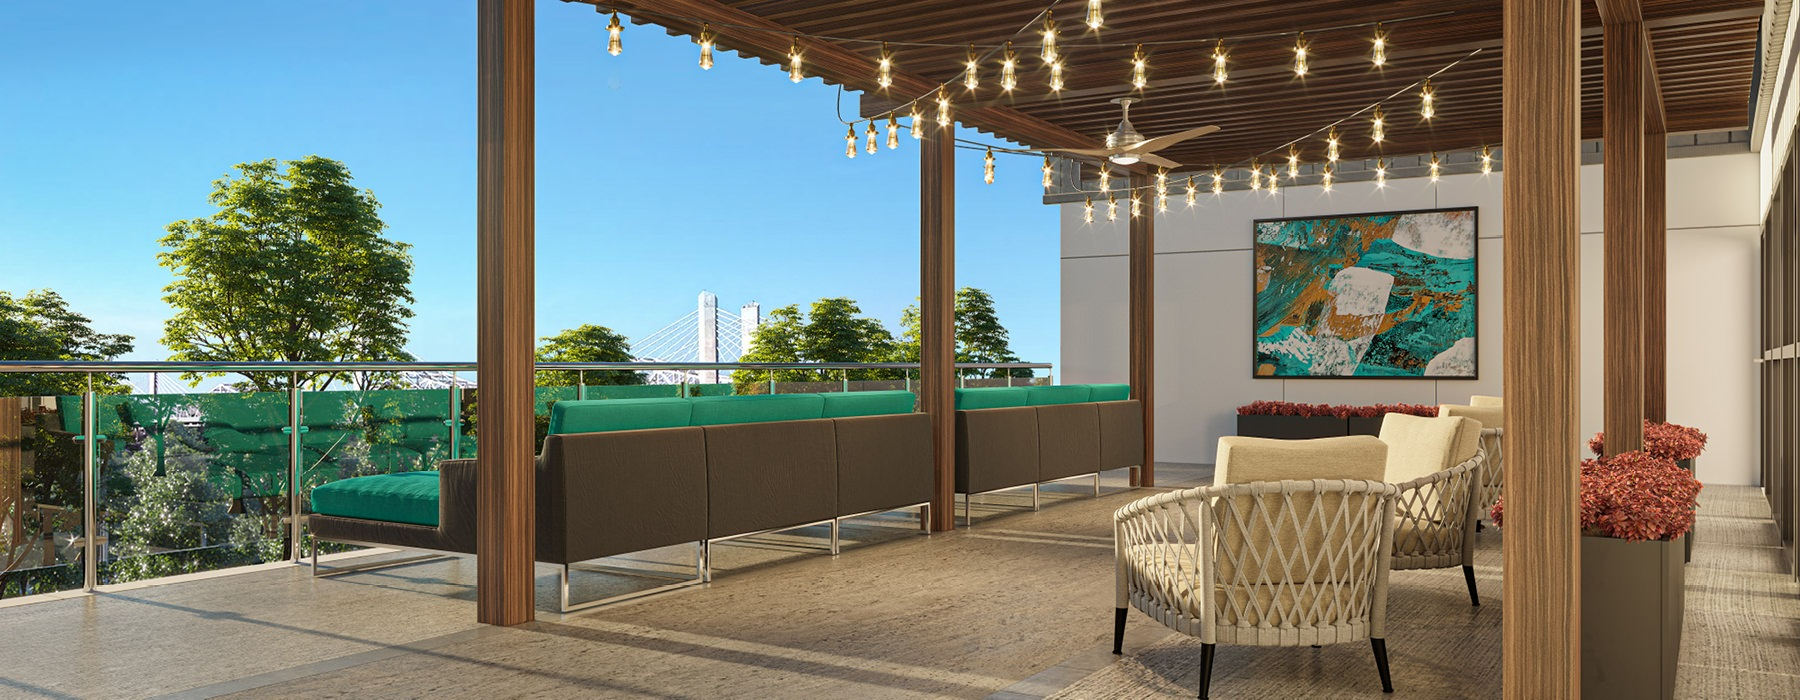 covered, outdoor patio overlooking the Ohio River